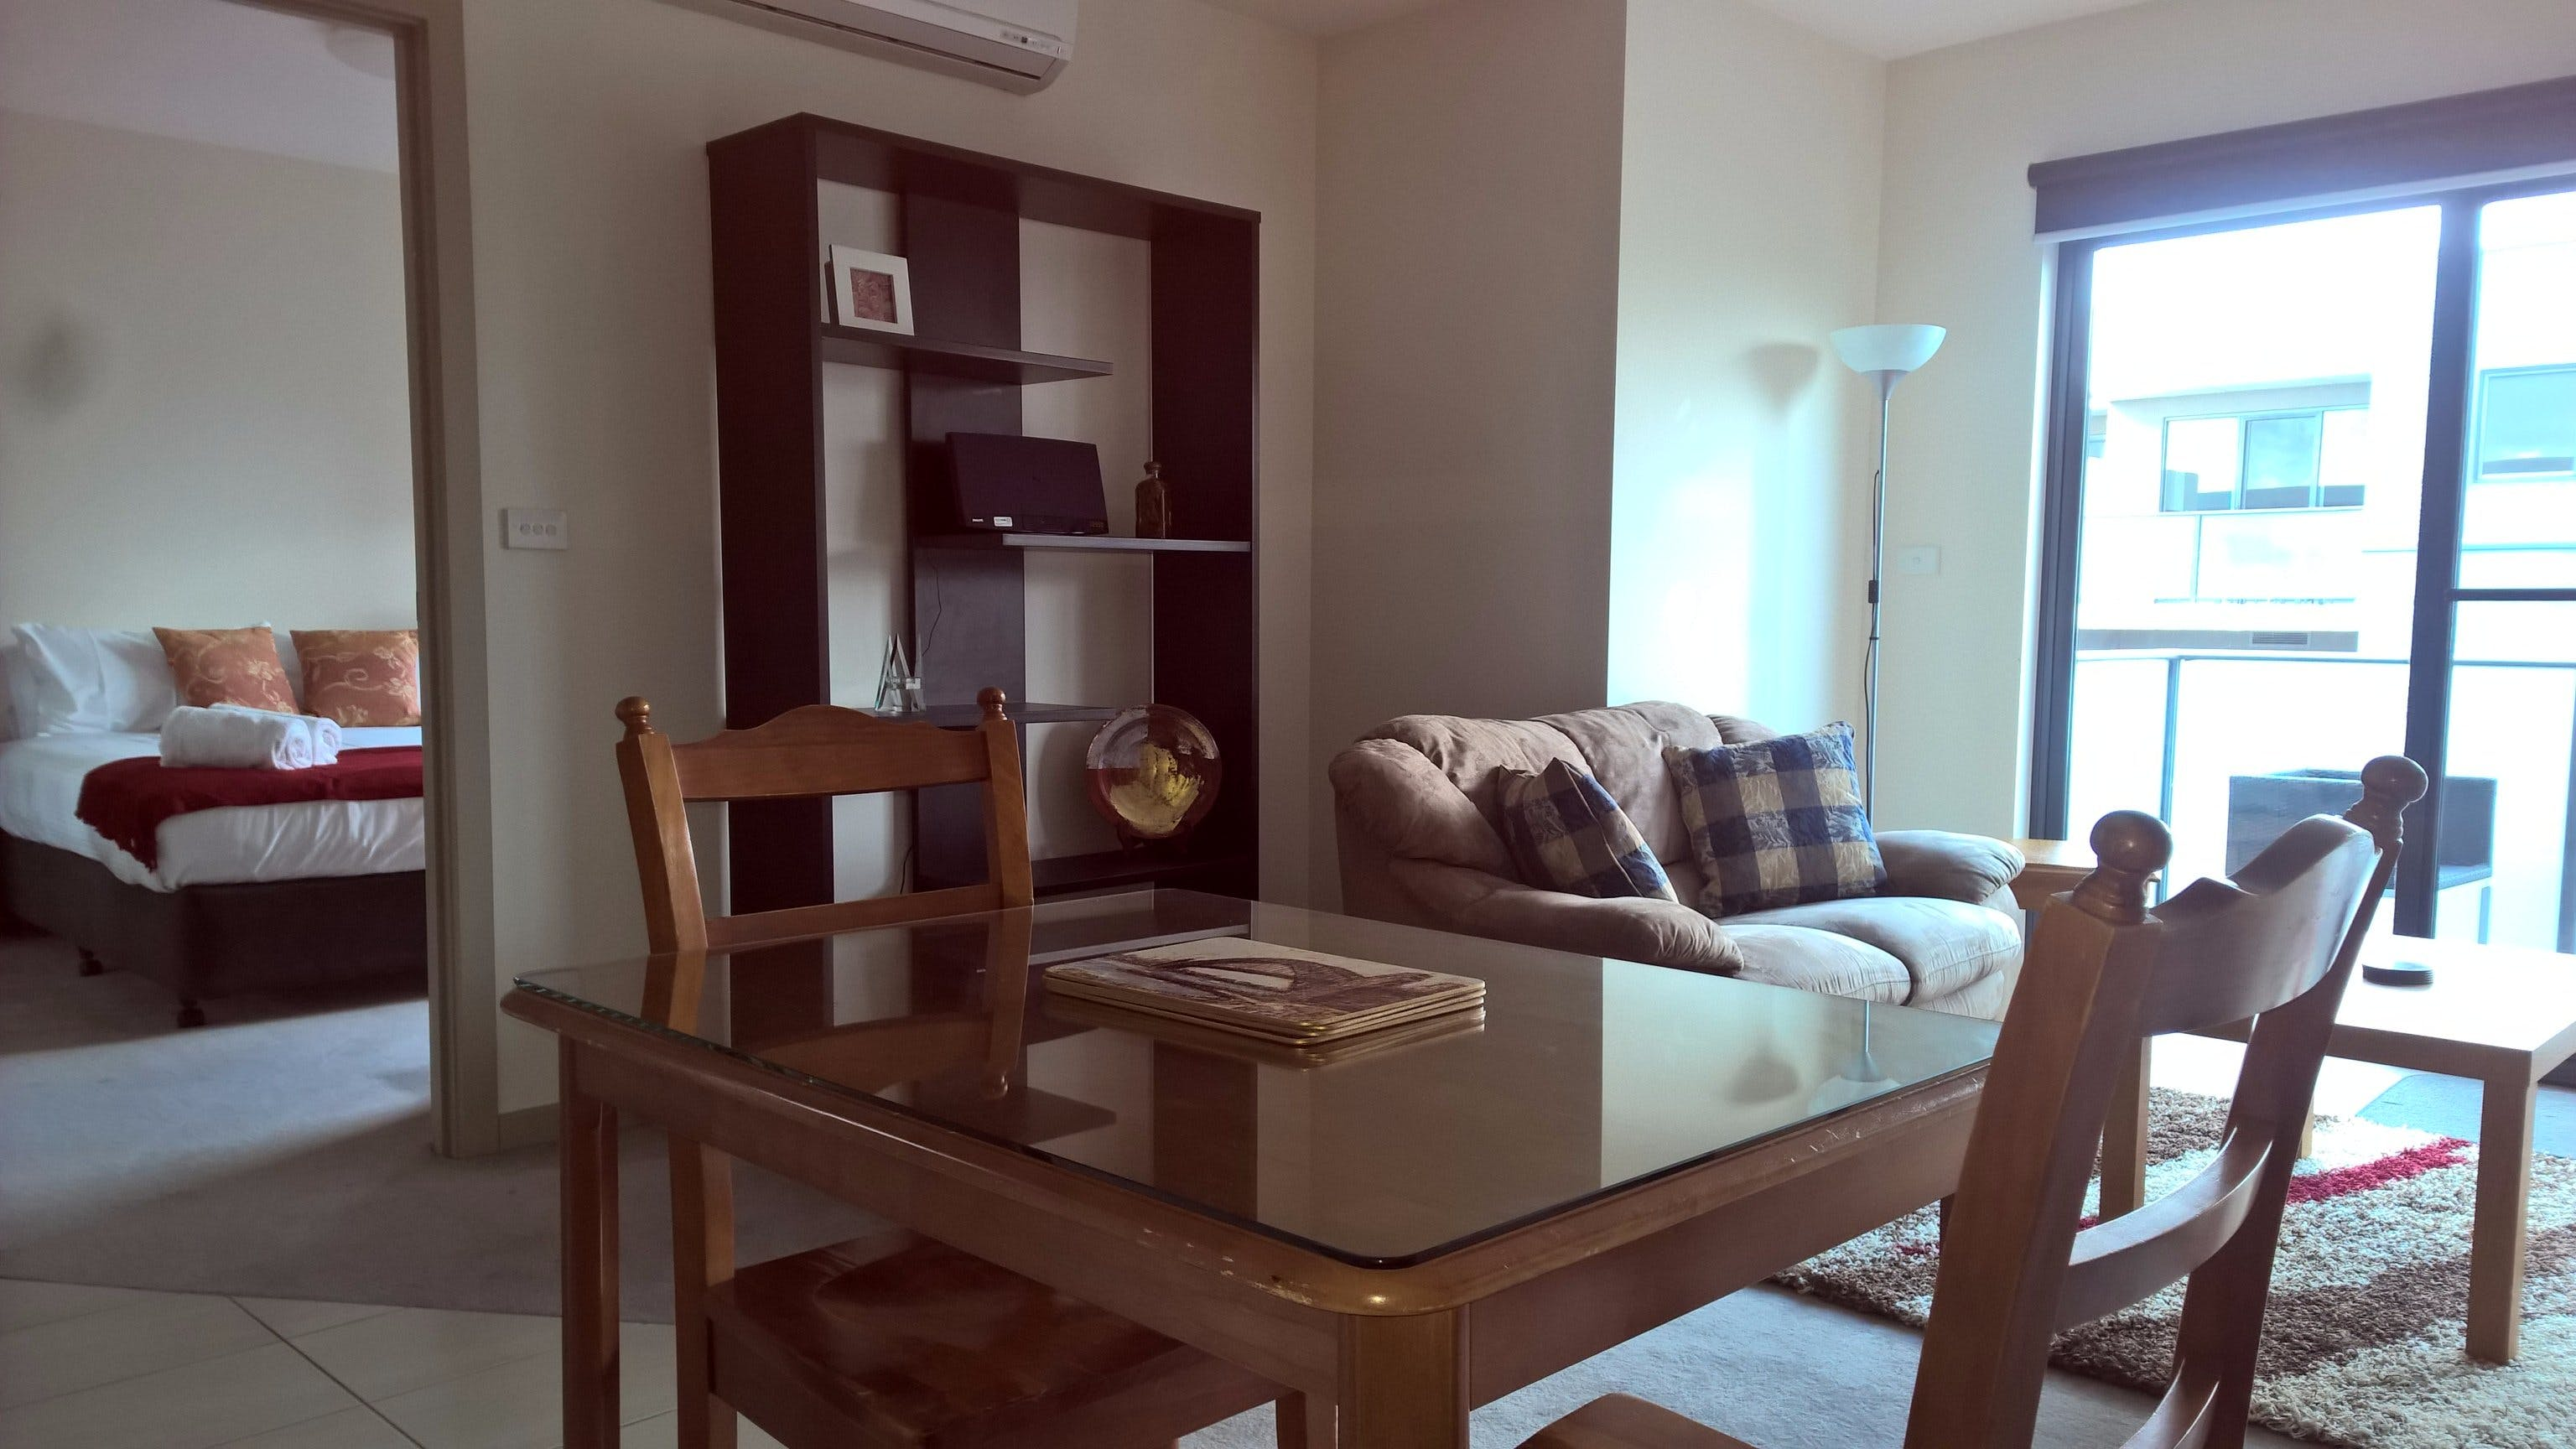 Apartments of Waverley - Accommodation Georgetown